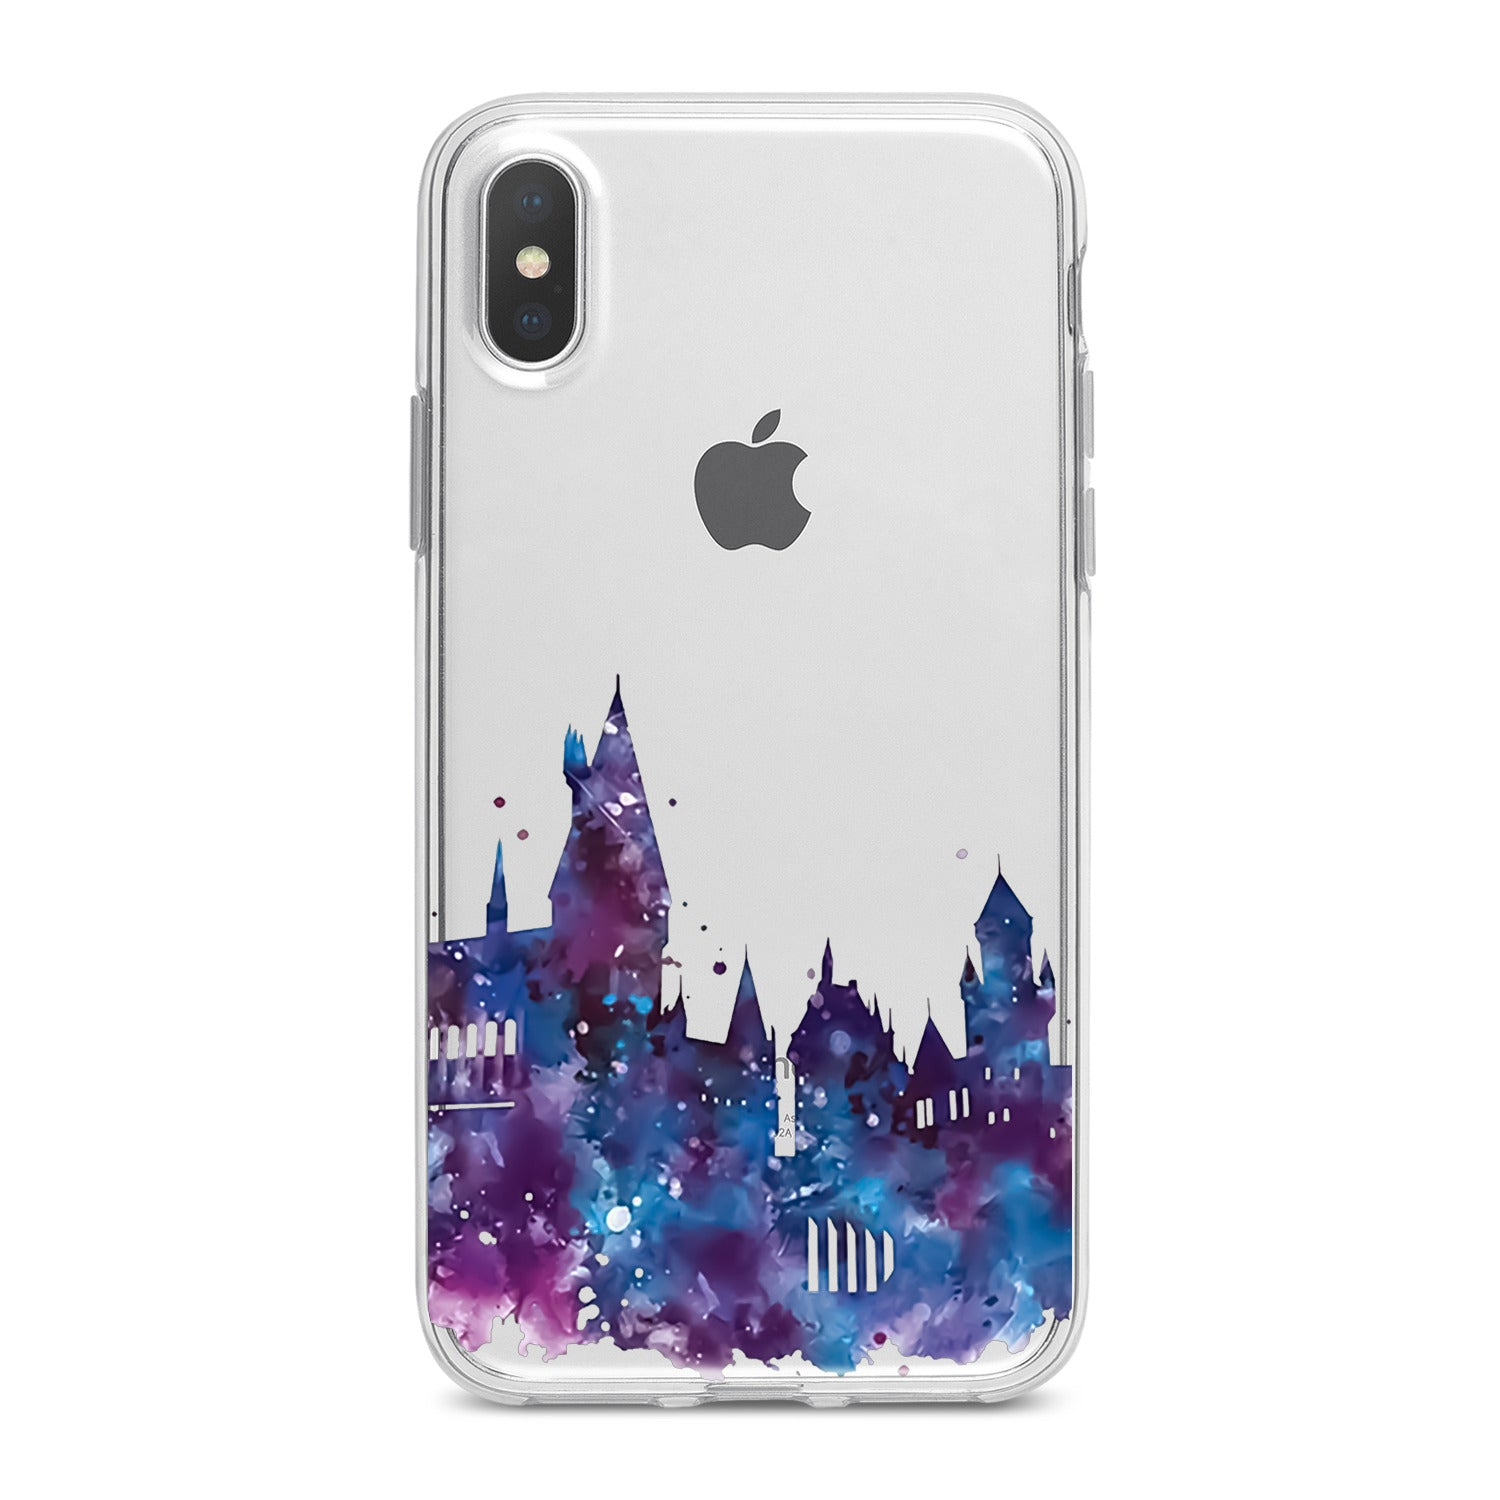 Lex Altern Magical Tower Phone Case for your iPhone & Android phone.